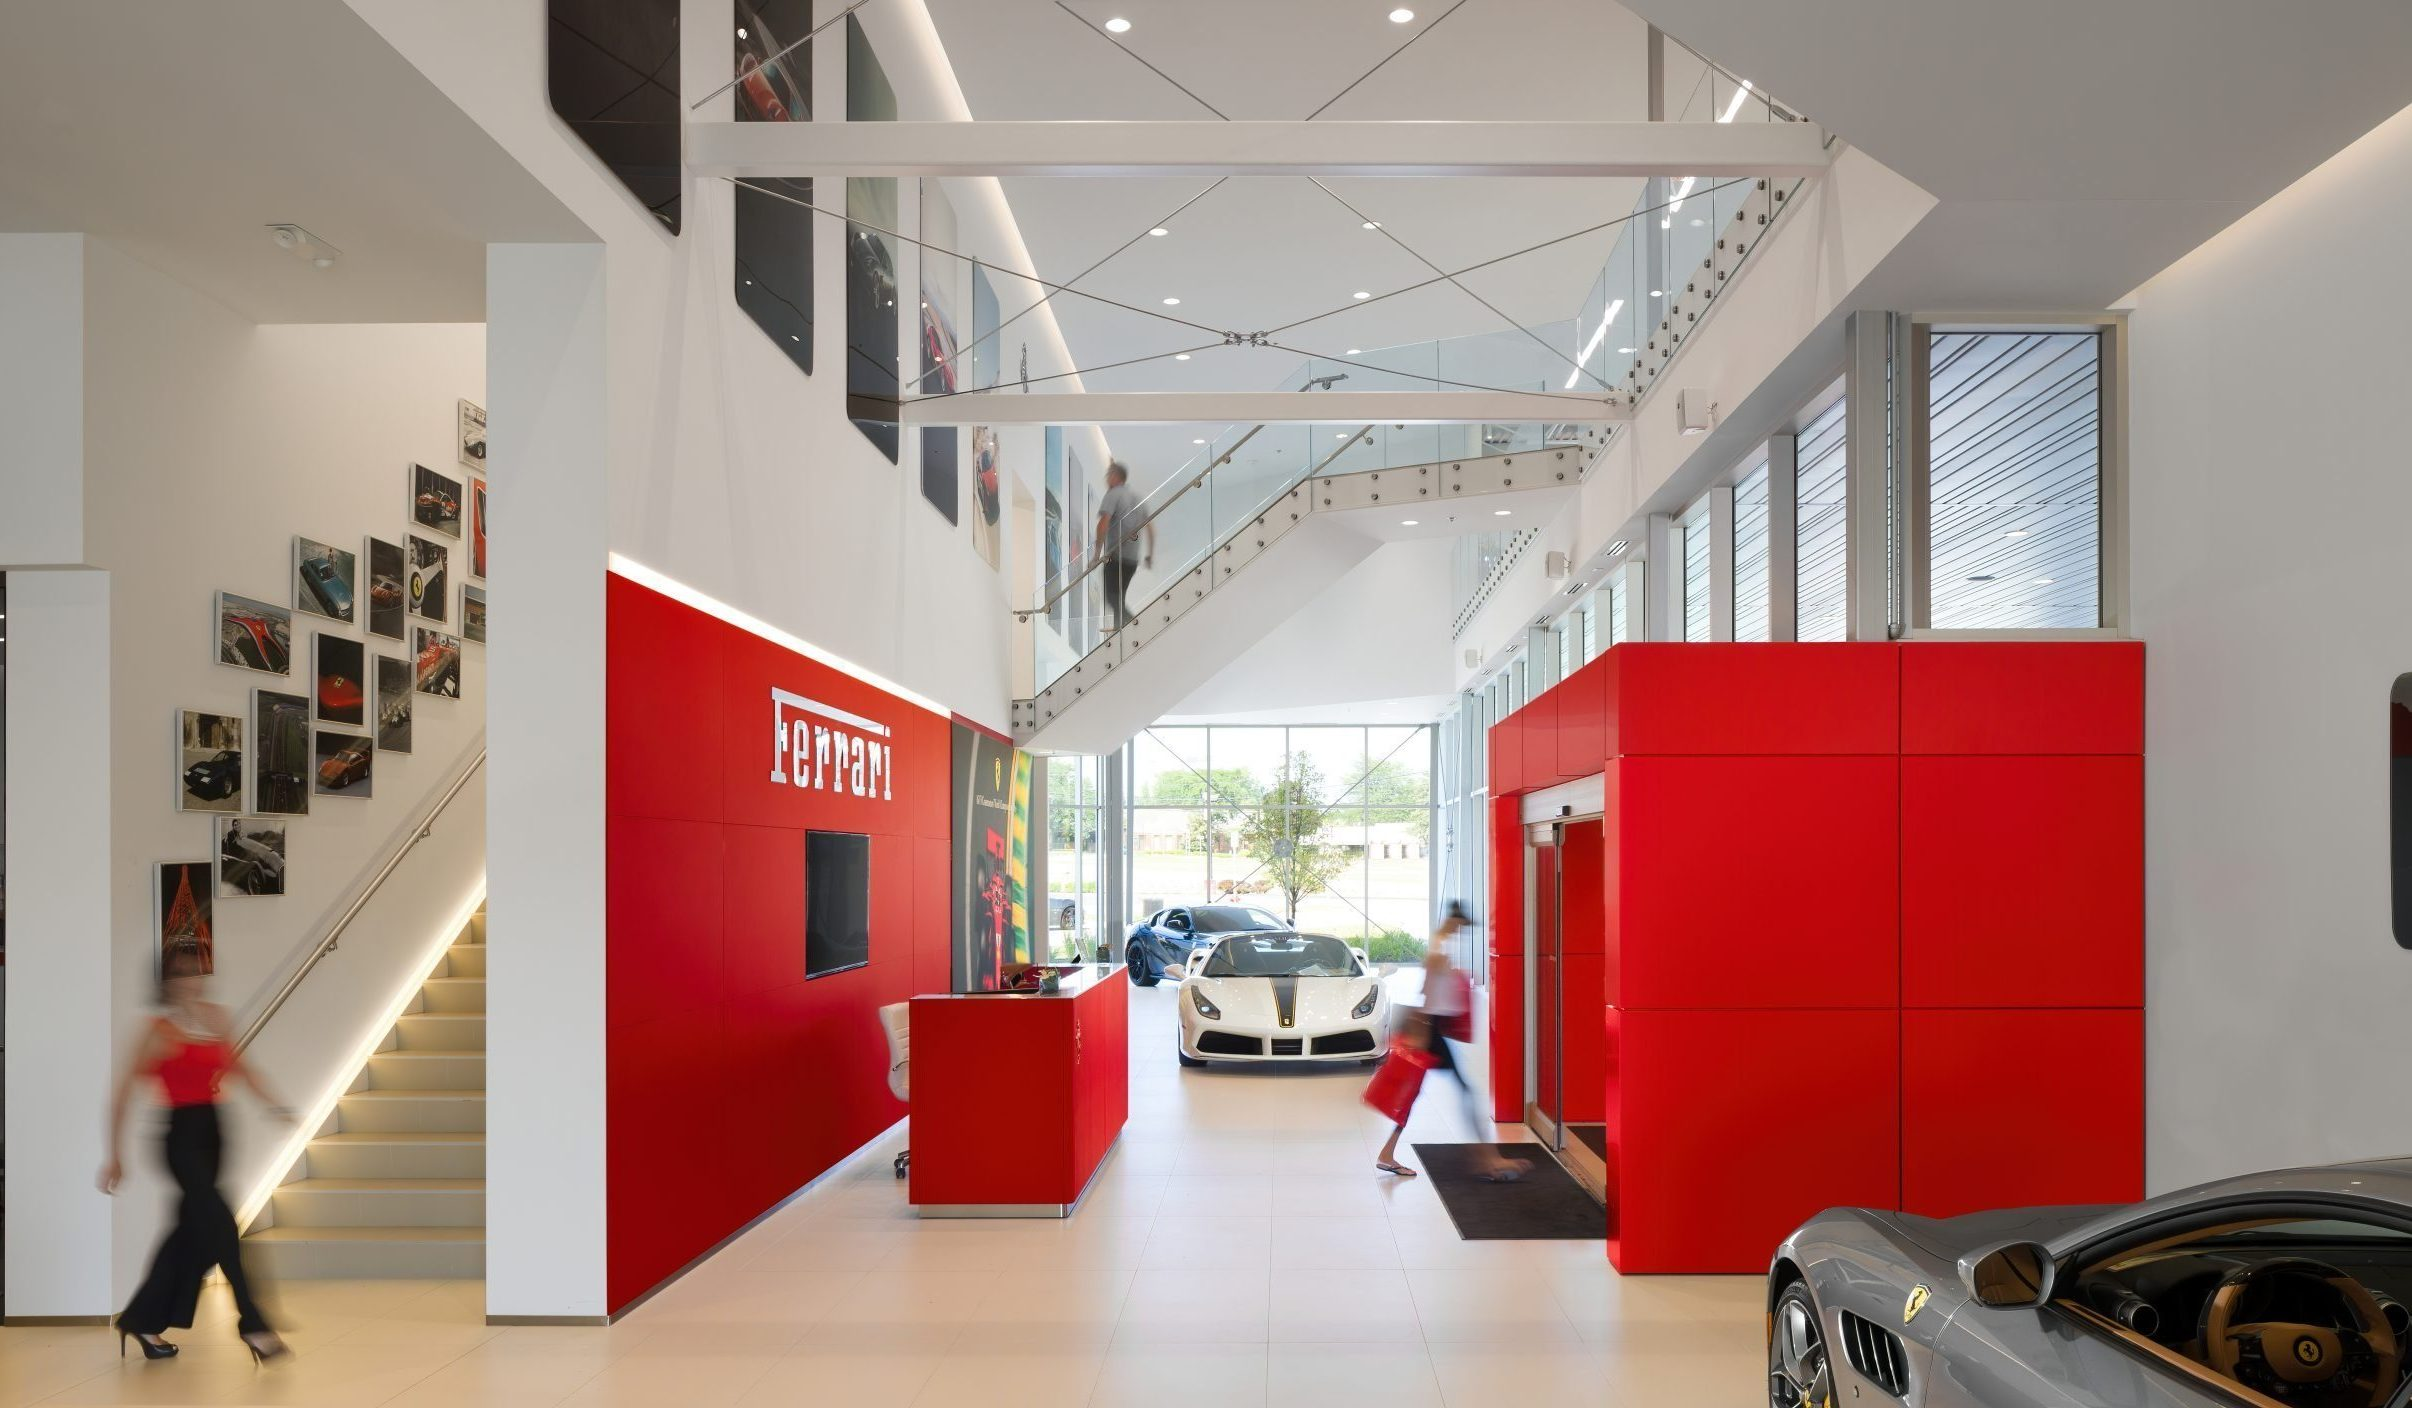 Interior view of lobby and stair at Cauley Ferrari of Detroit Dealership and Showroom Project in Michigan Architecture Interiors Computational Design